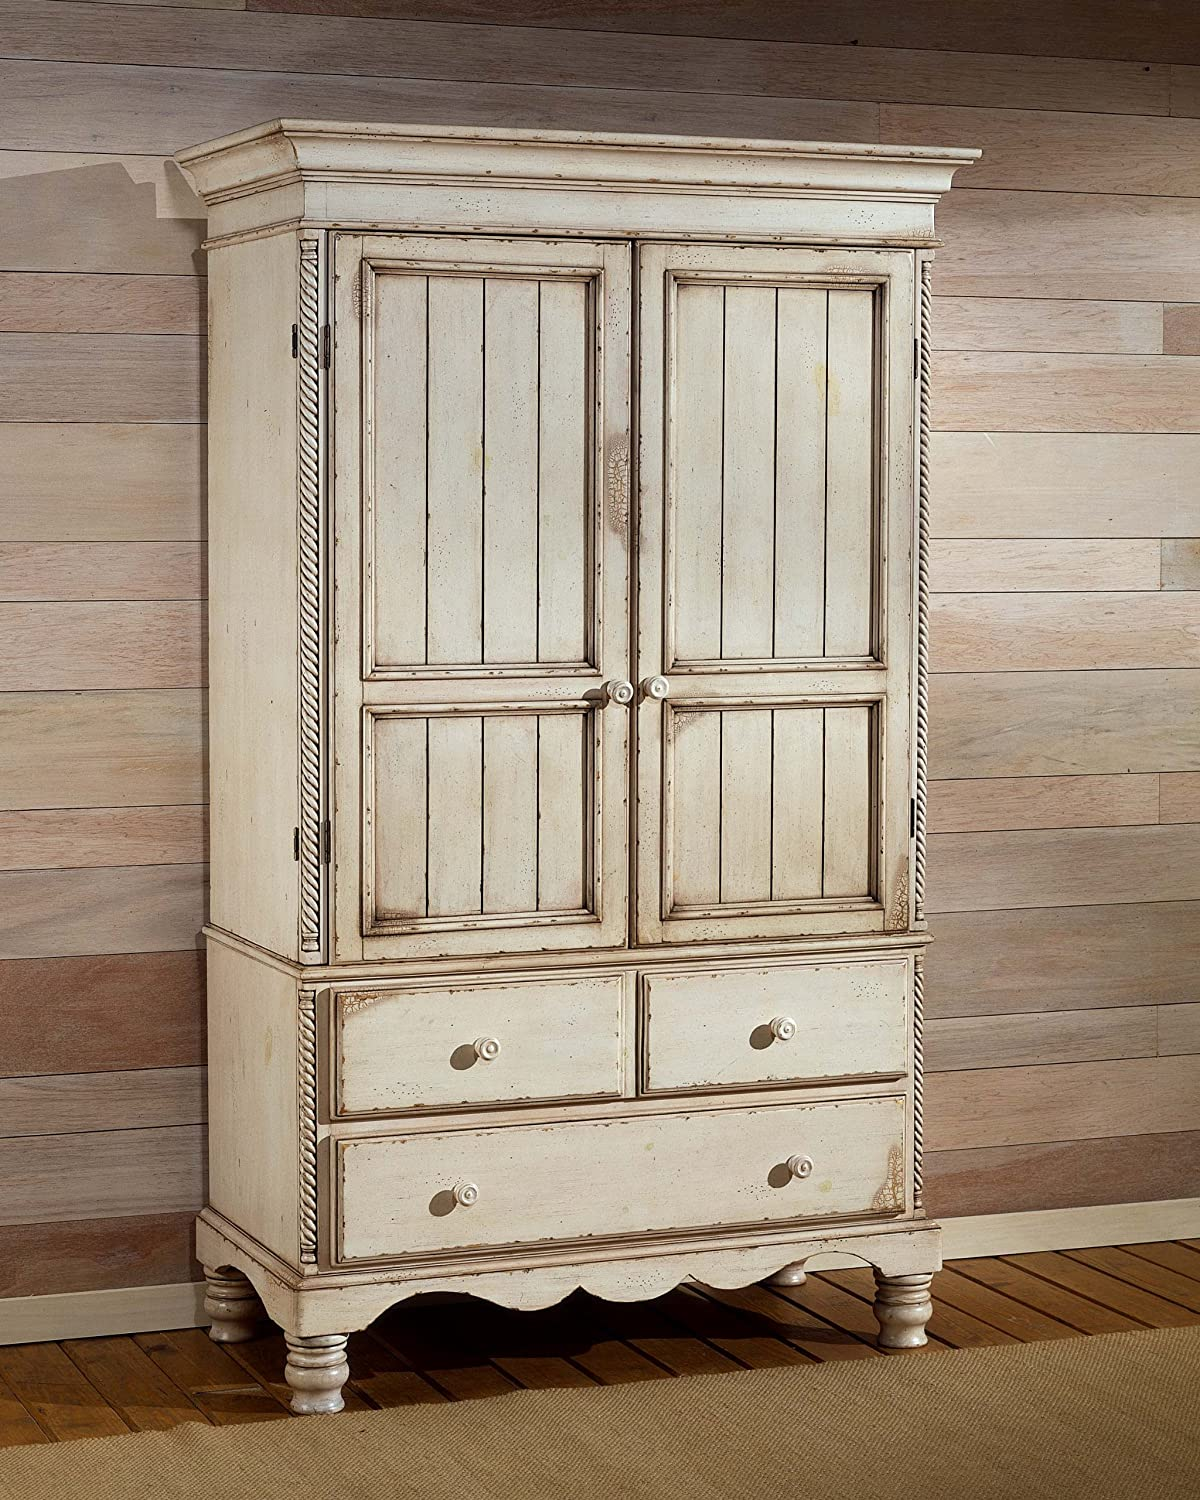 Amazon.com: Wilshire Traditional Armoire w Drawers & Antique White Finish:  Kitchen & Dining - Amazon.com: Wilshire Traditional Armoire W Drawers & Antique White